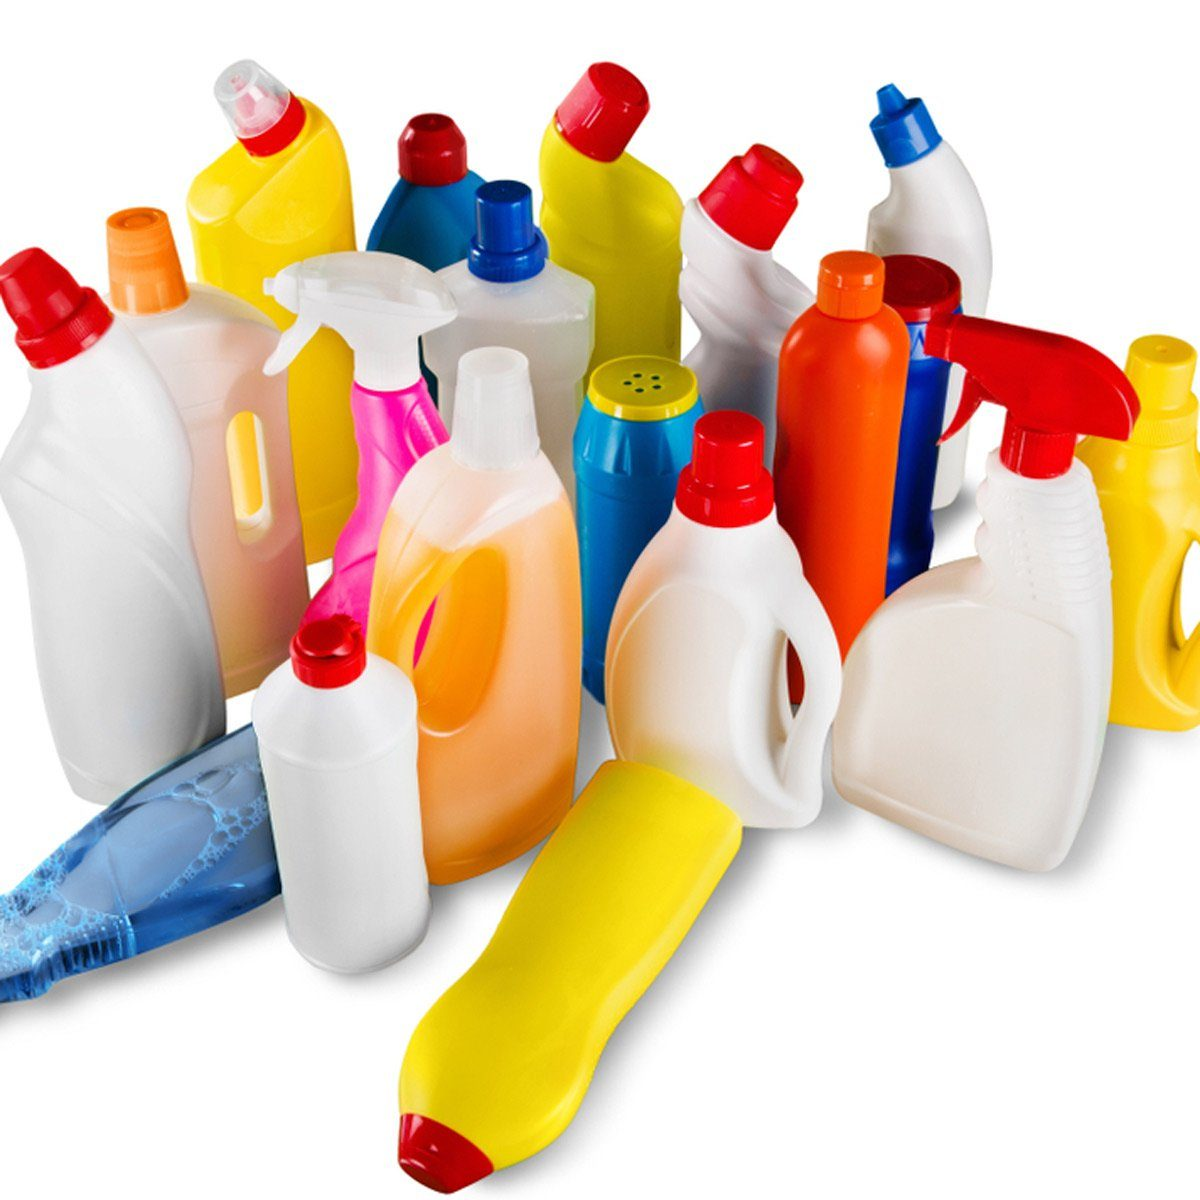 shutterstock_769960159 cleaning items